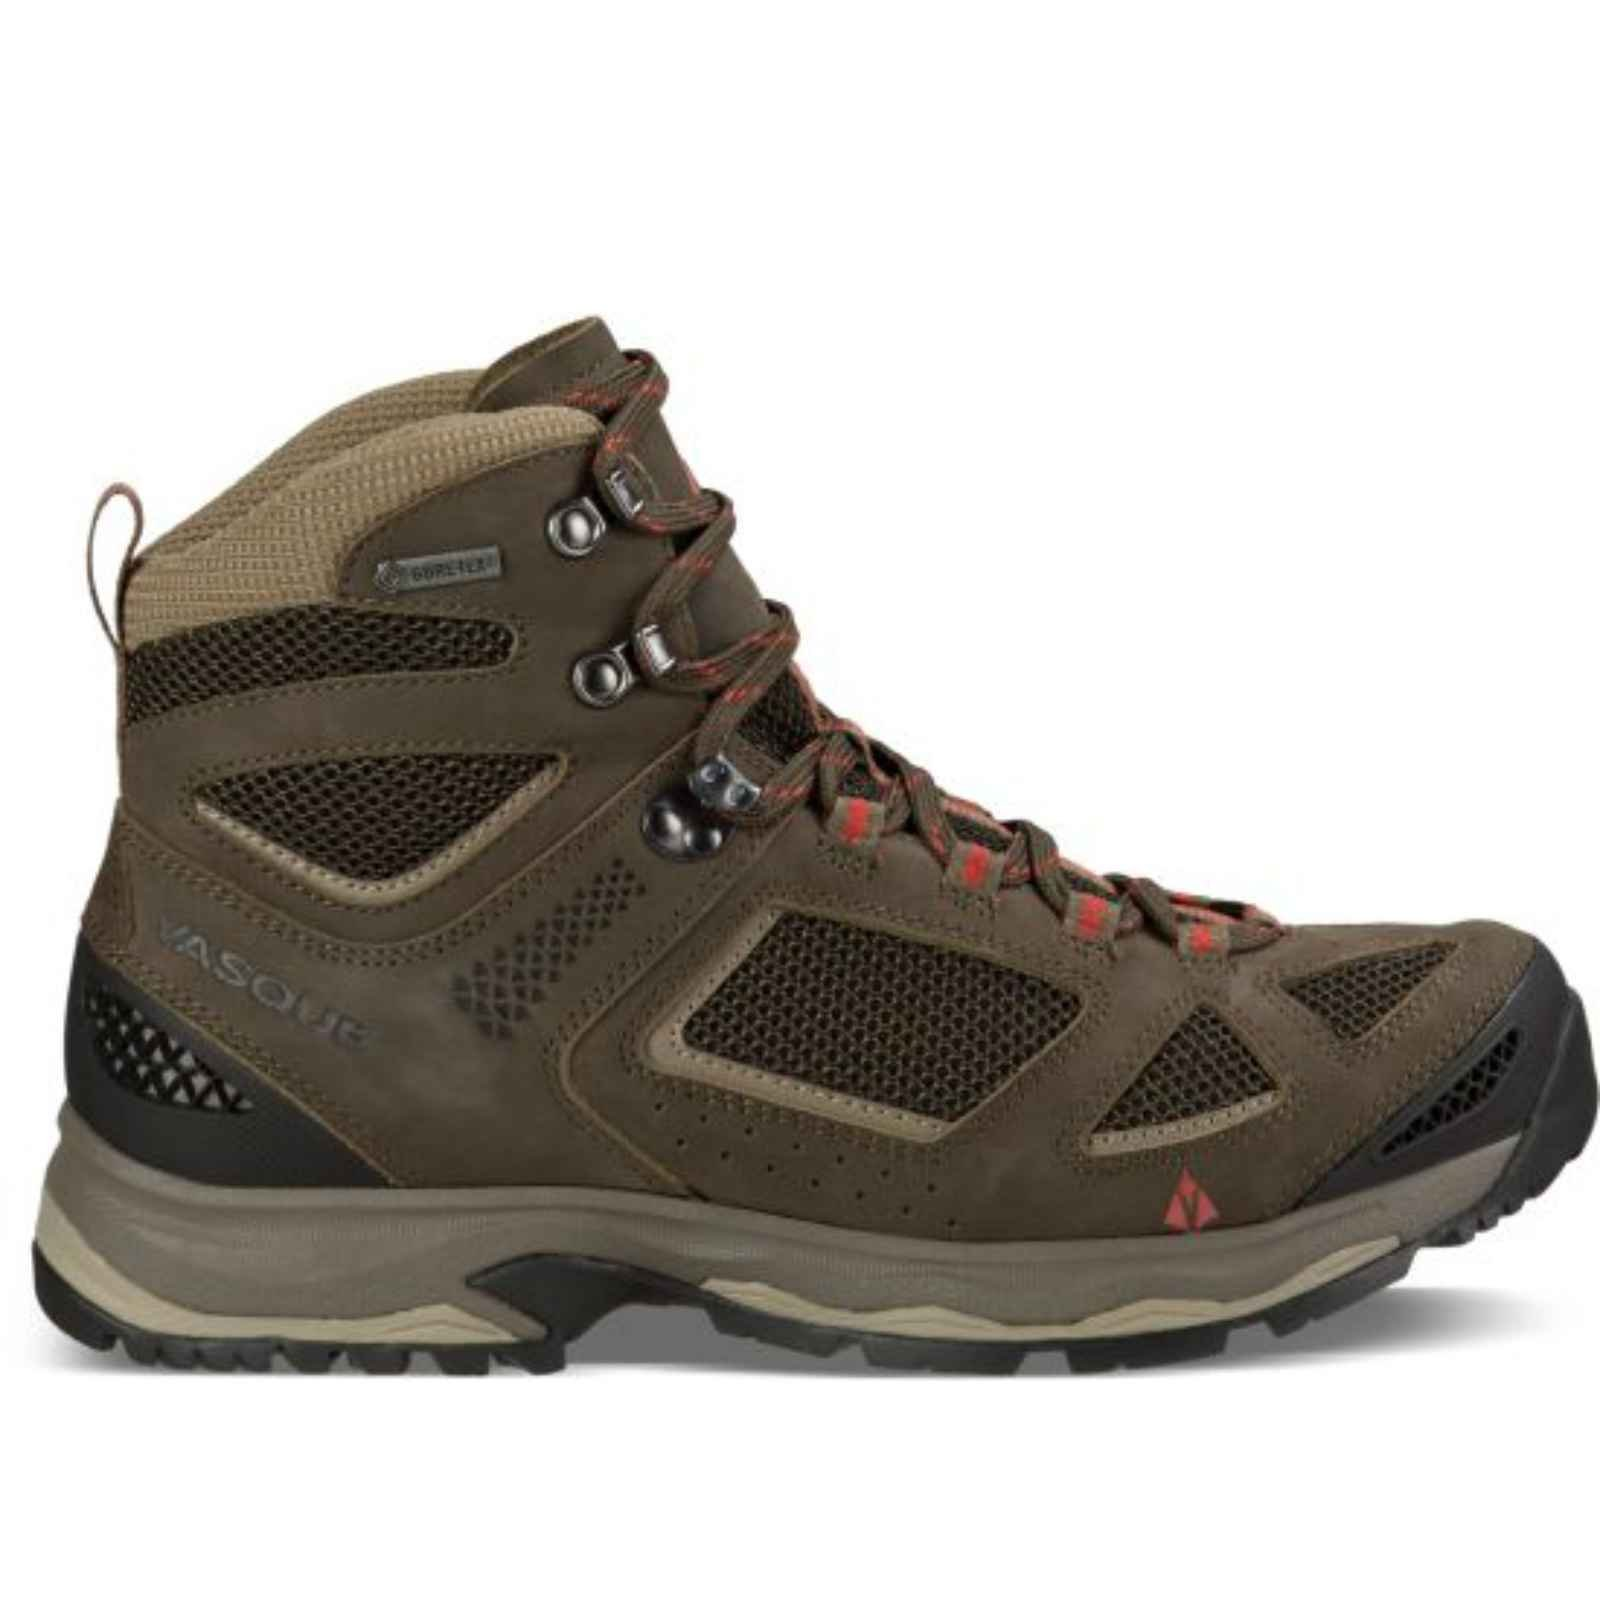 Vasque Breeze III GTX Boot - Mens Brown Olive / Bungee Cord 10